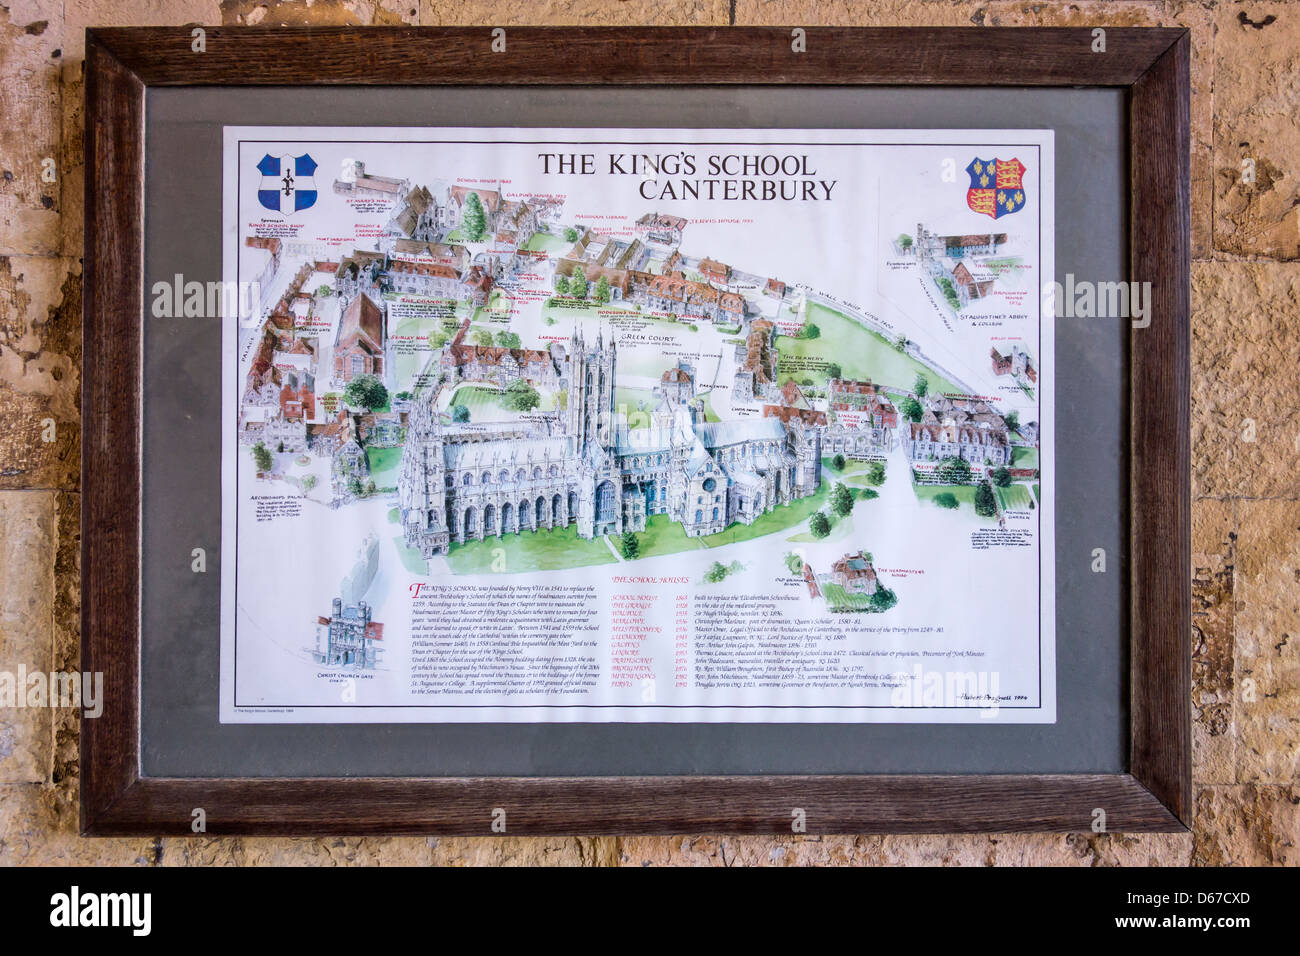 The Kings School Canterbury Location Map - Stock Image